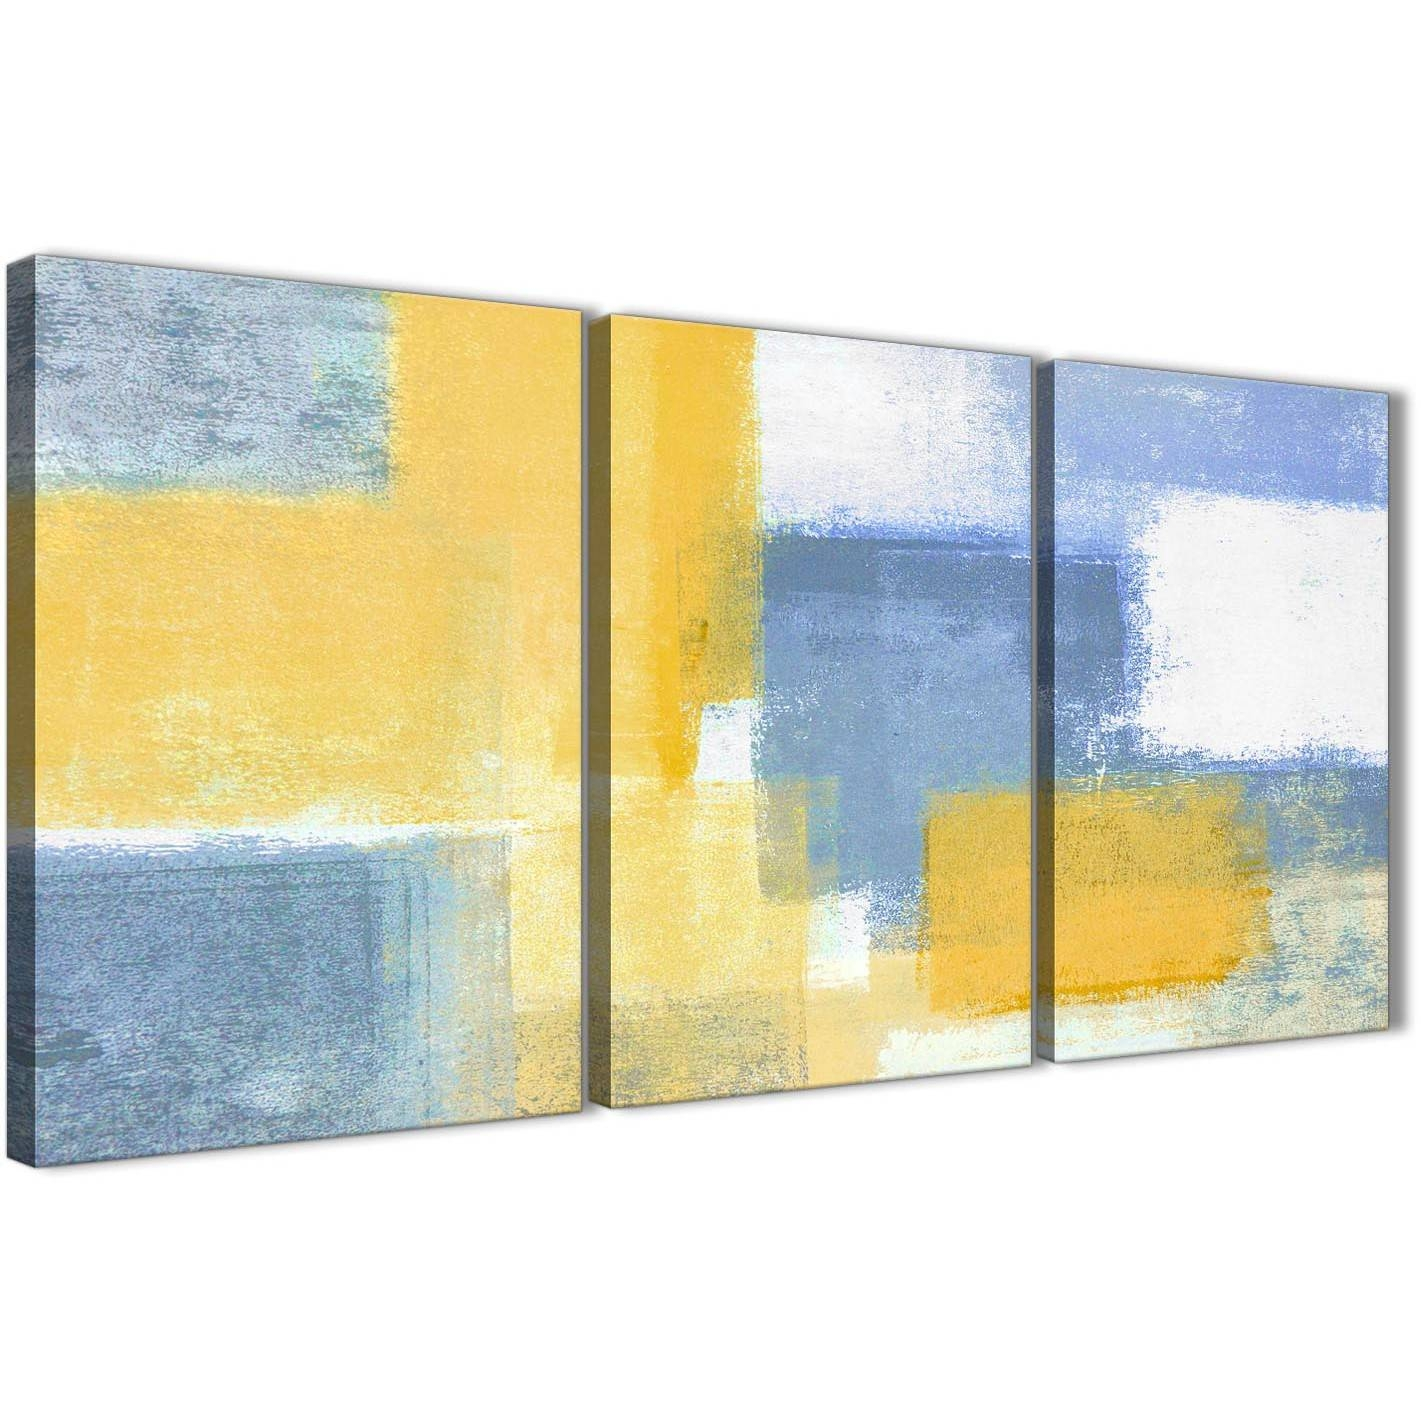 3 Piece Mustard Yellow Blue Kitchen Canvas Pictures Decor Intended For Most Popular Yellow And Blue Wall Art (View 8 of 20)